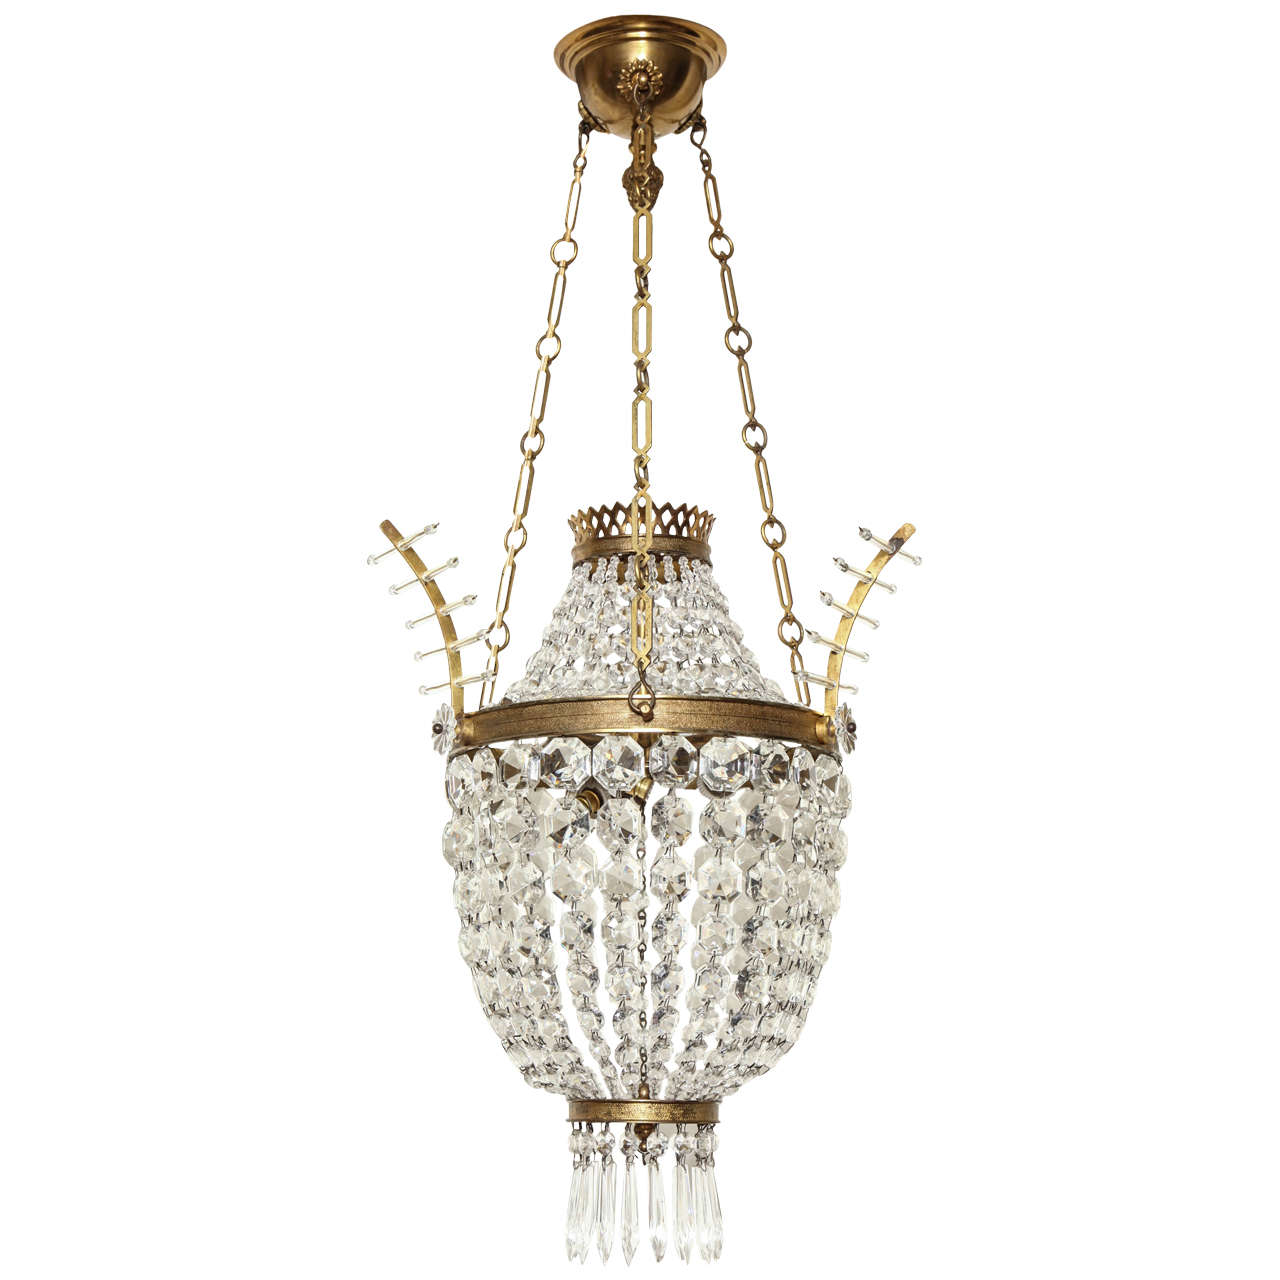 A French Louis XVI style Pendant Fixture 1